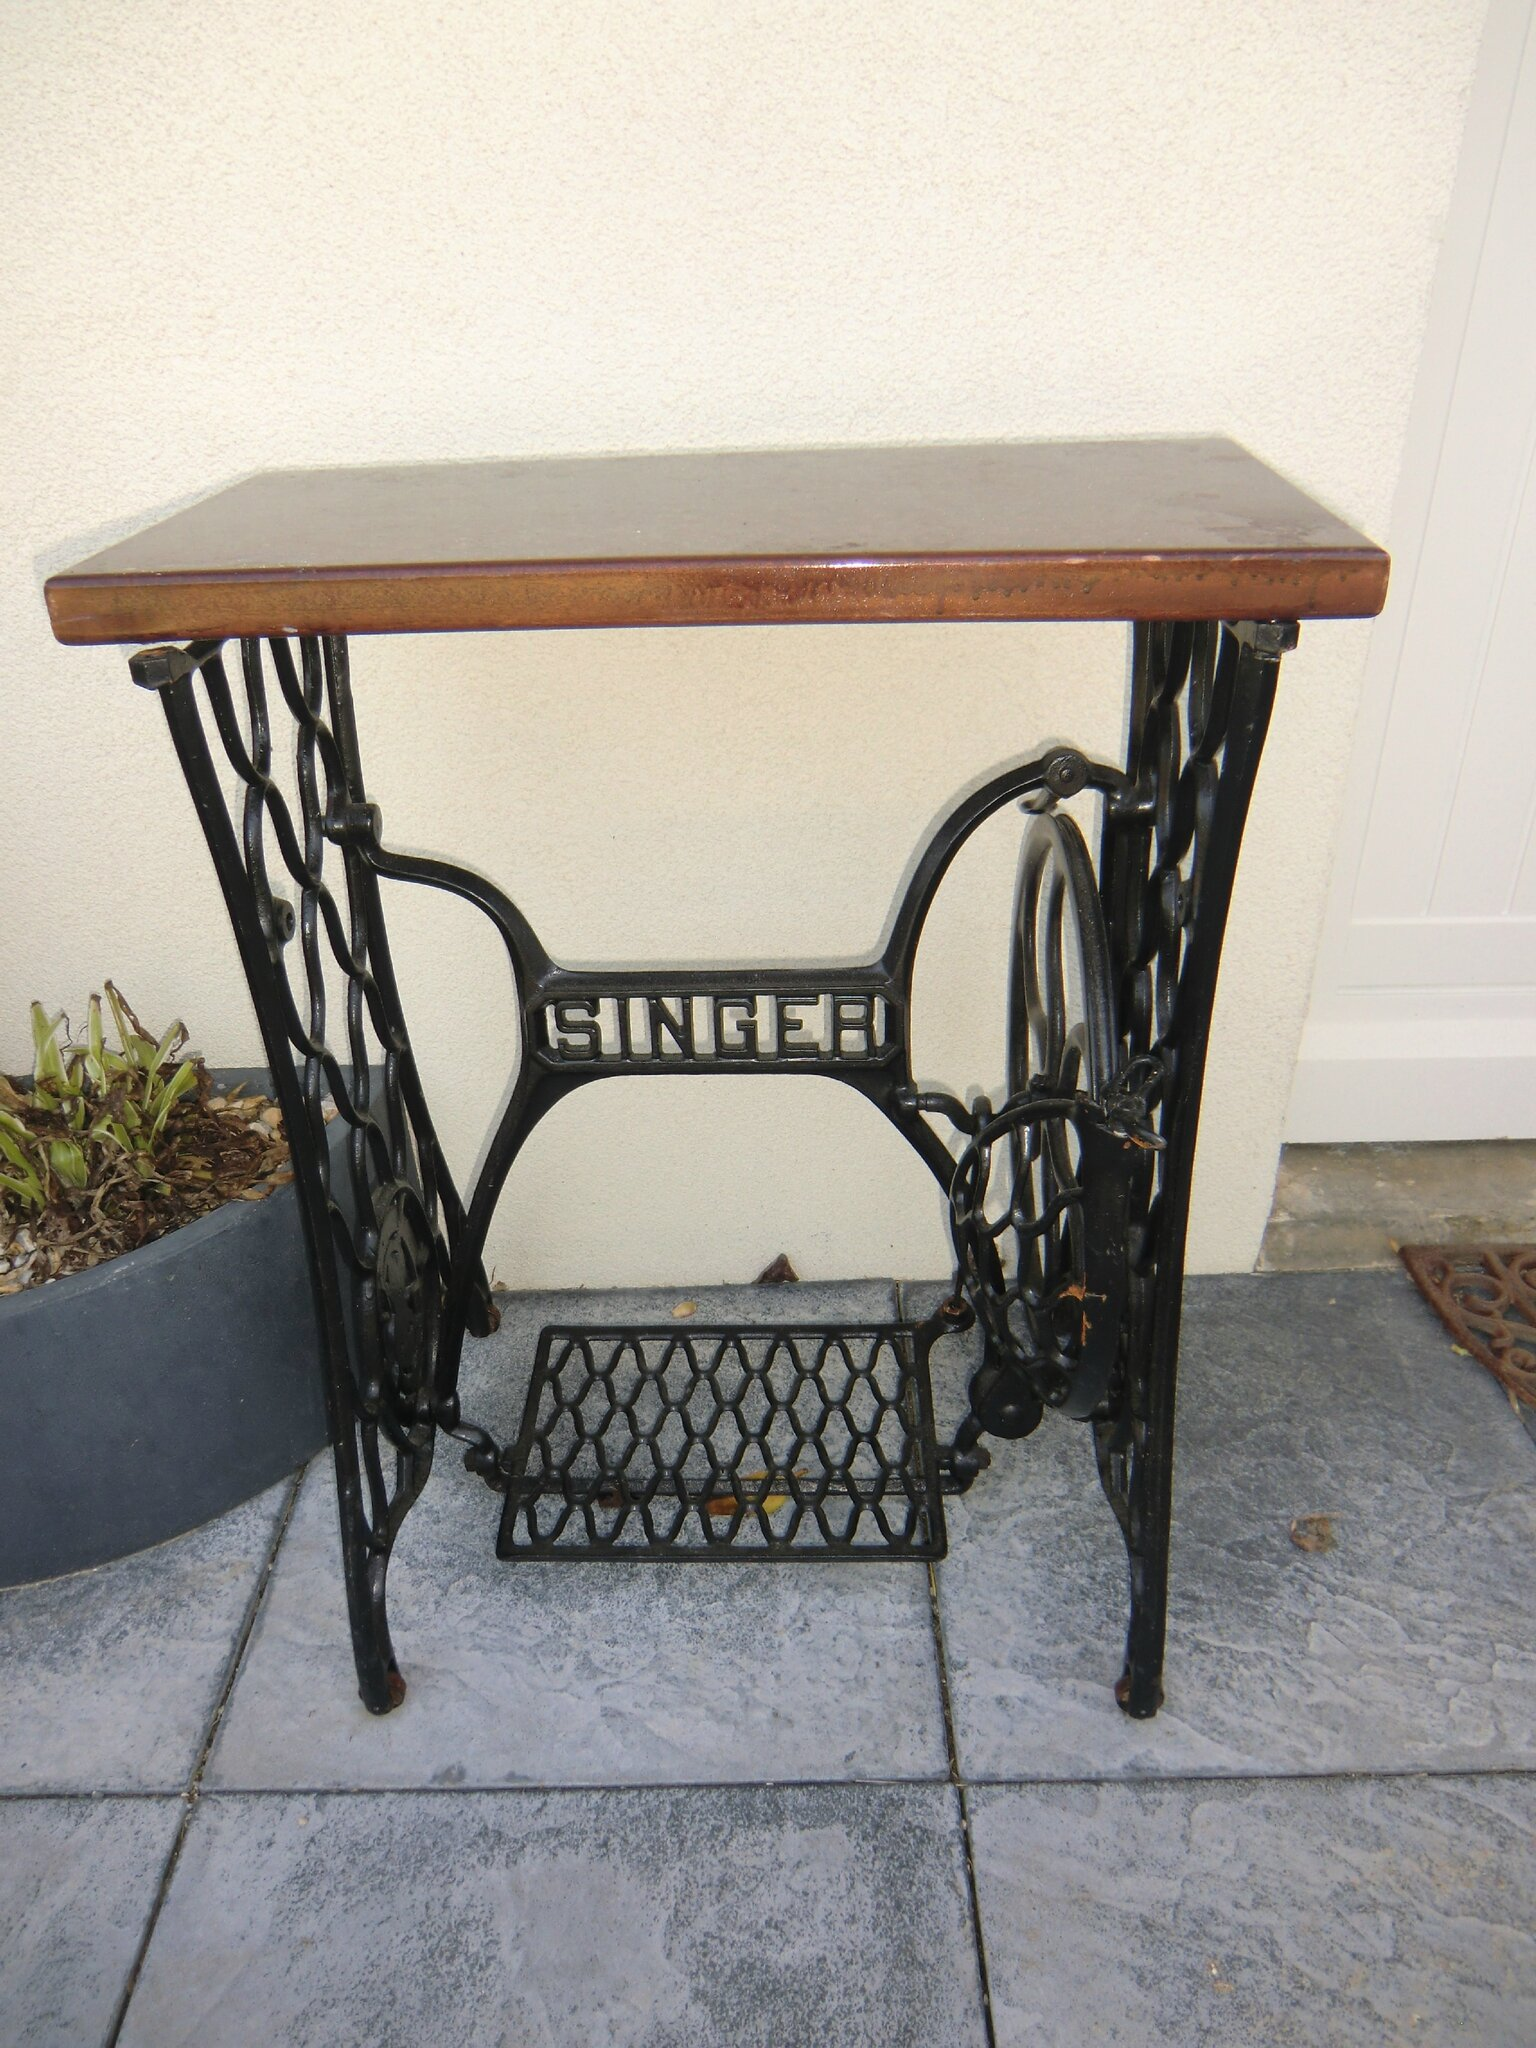 Table a couture singer table de lit - Vieille machine a coudre singer ...